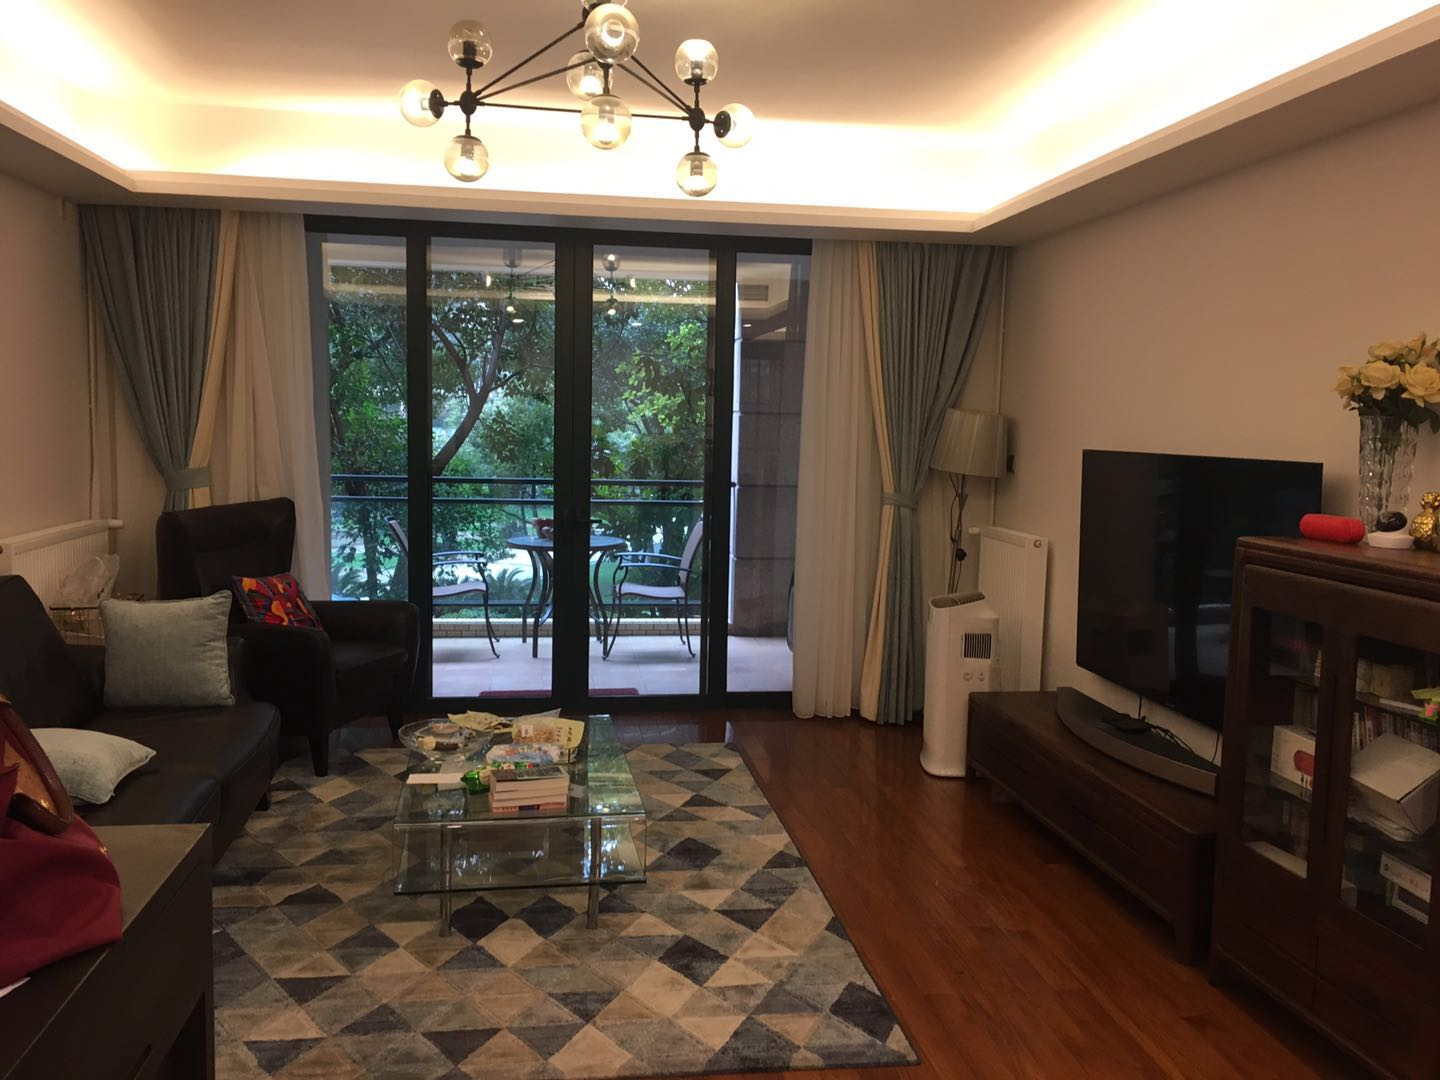 Yanlord-Puxi Renovated Spacious Apartment for Rent in Shangha